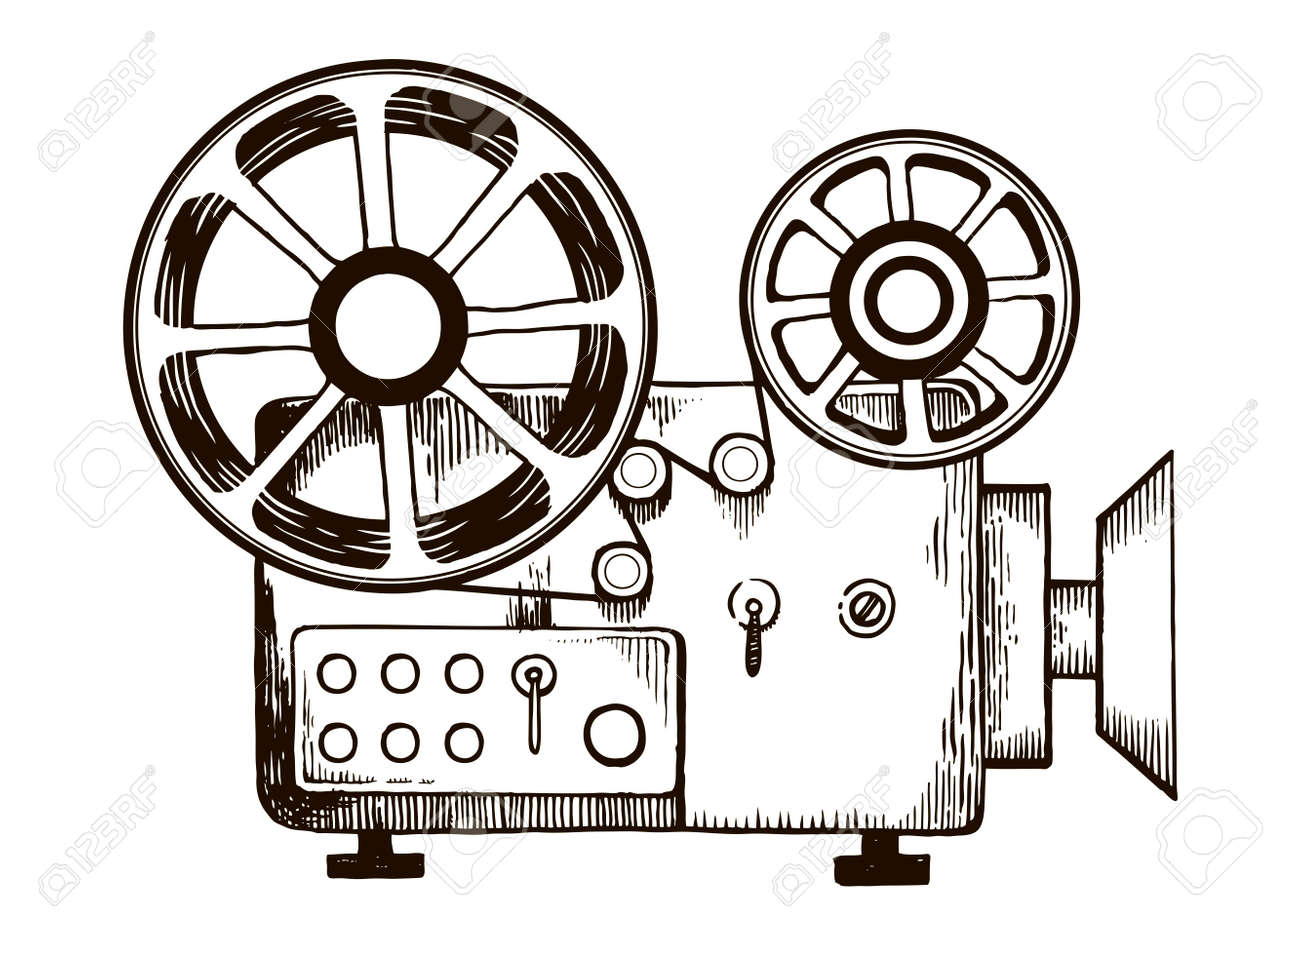 Old Cinema Projector Engraving Vector Illustration Stock